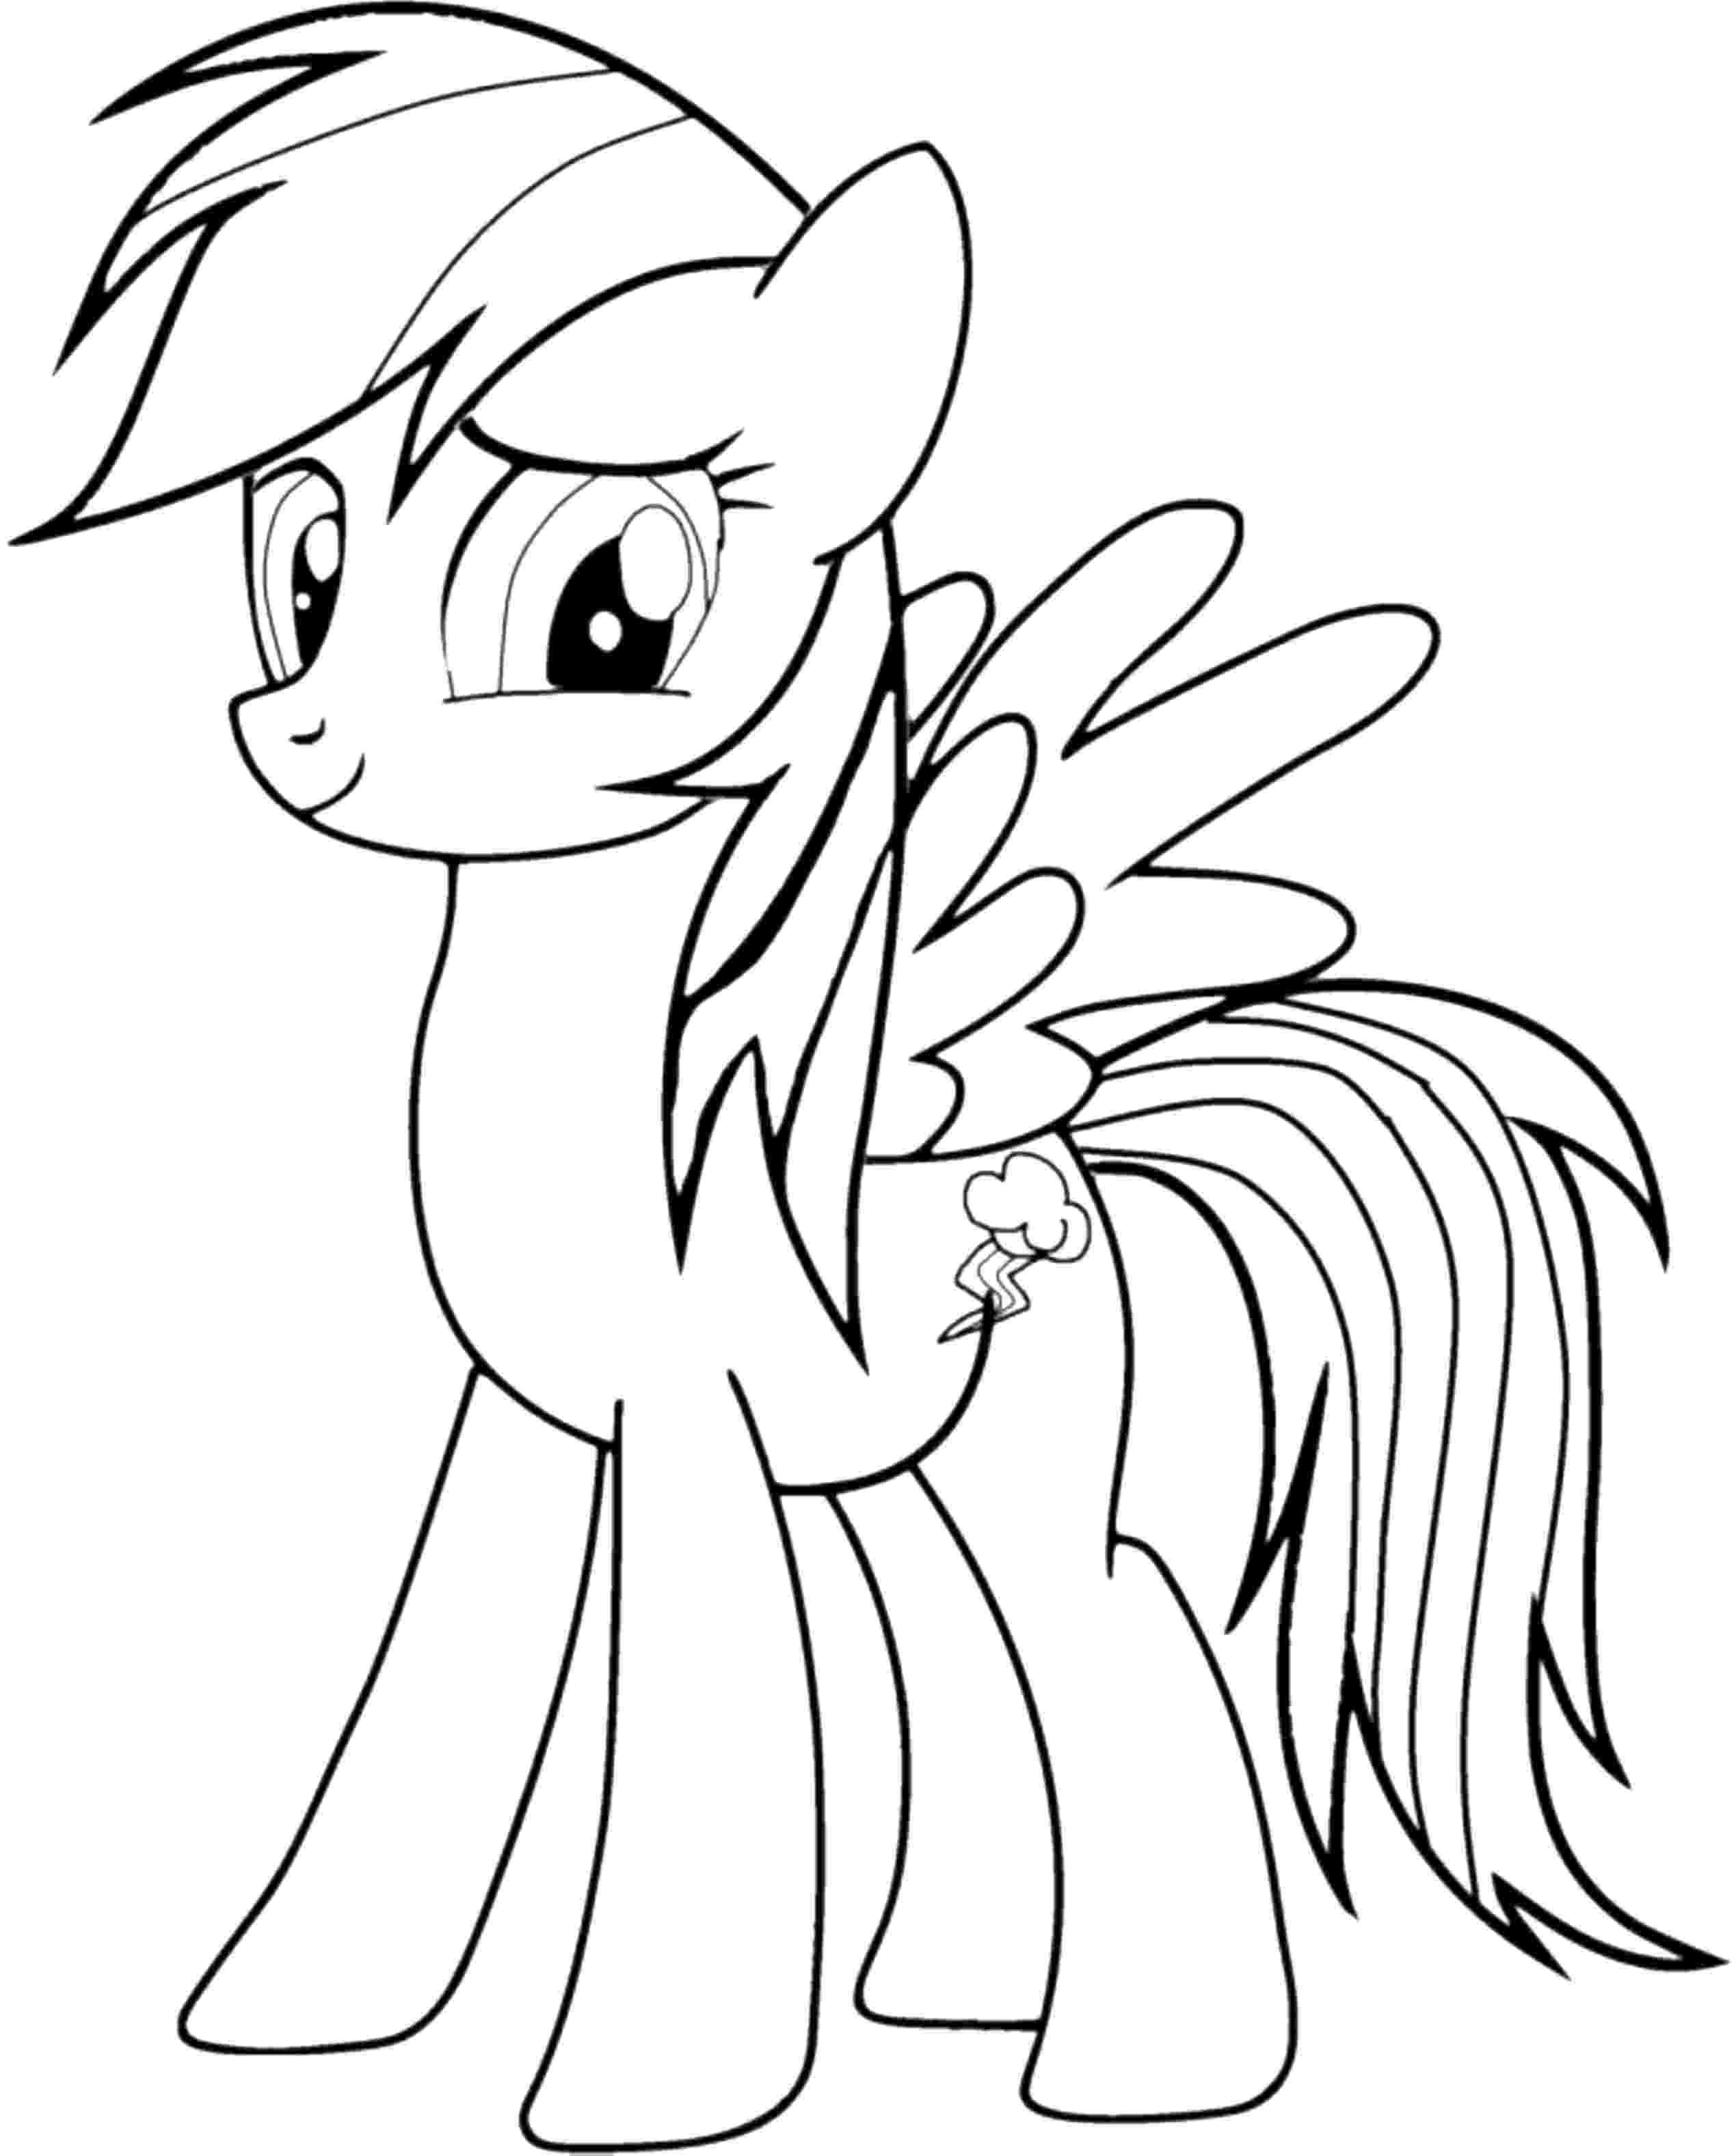 rainbow dash pictures to color rainbow dash coloring pages best coloring pages for kids pictures color rainbow dash to